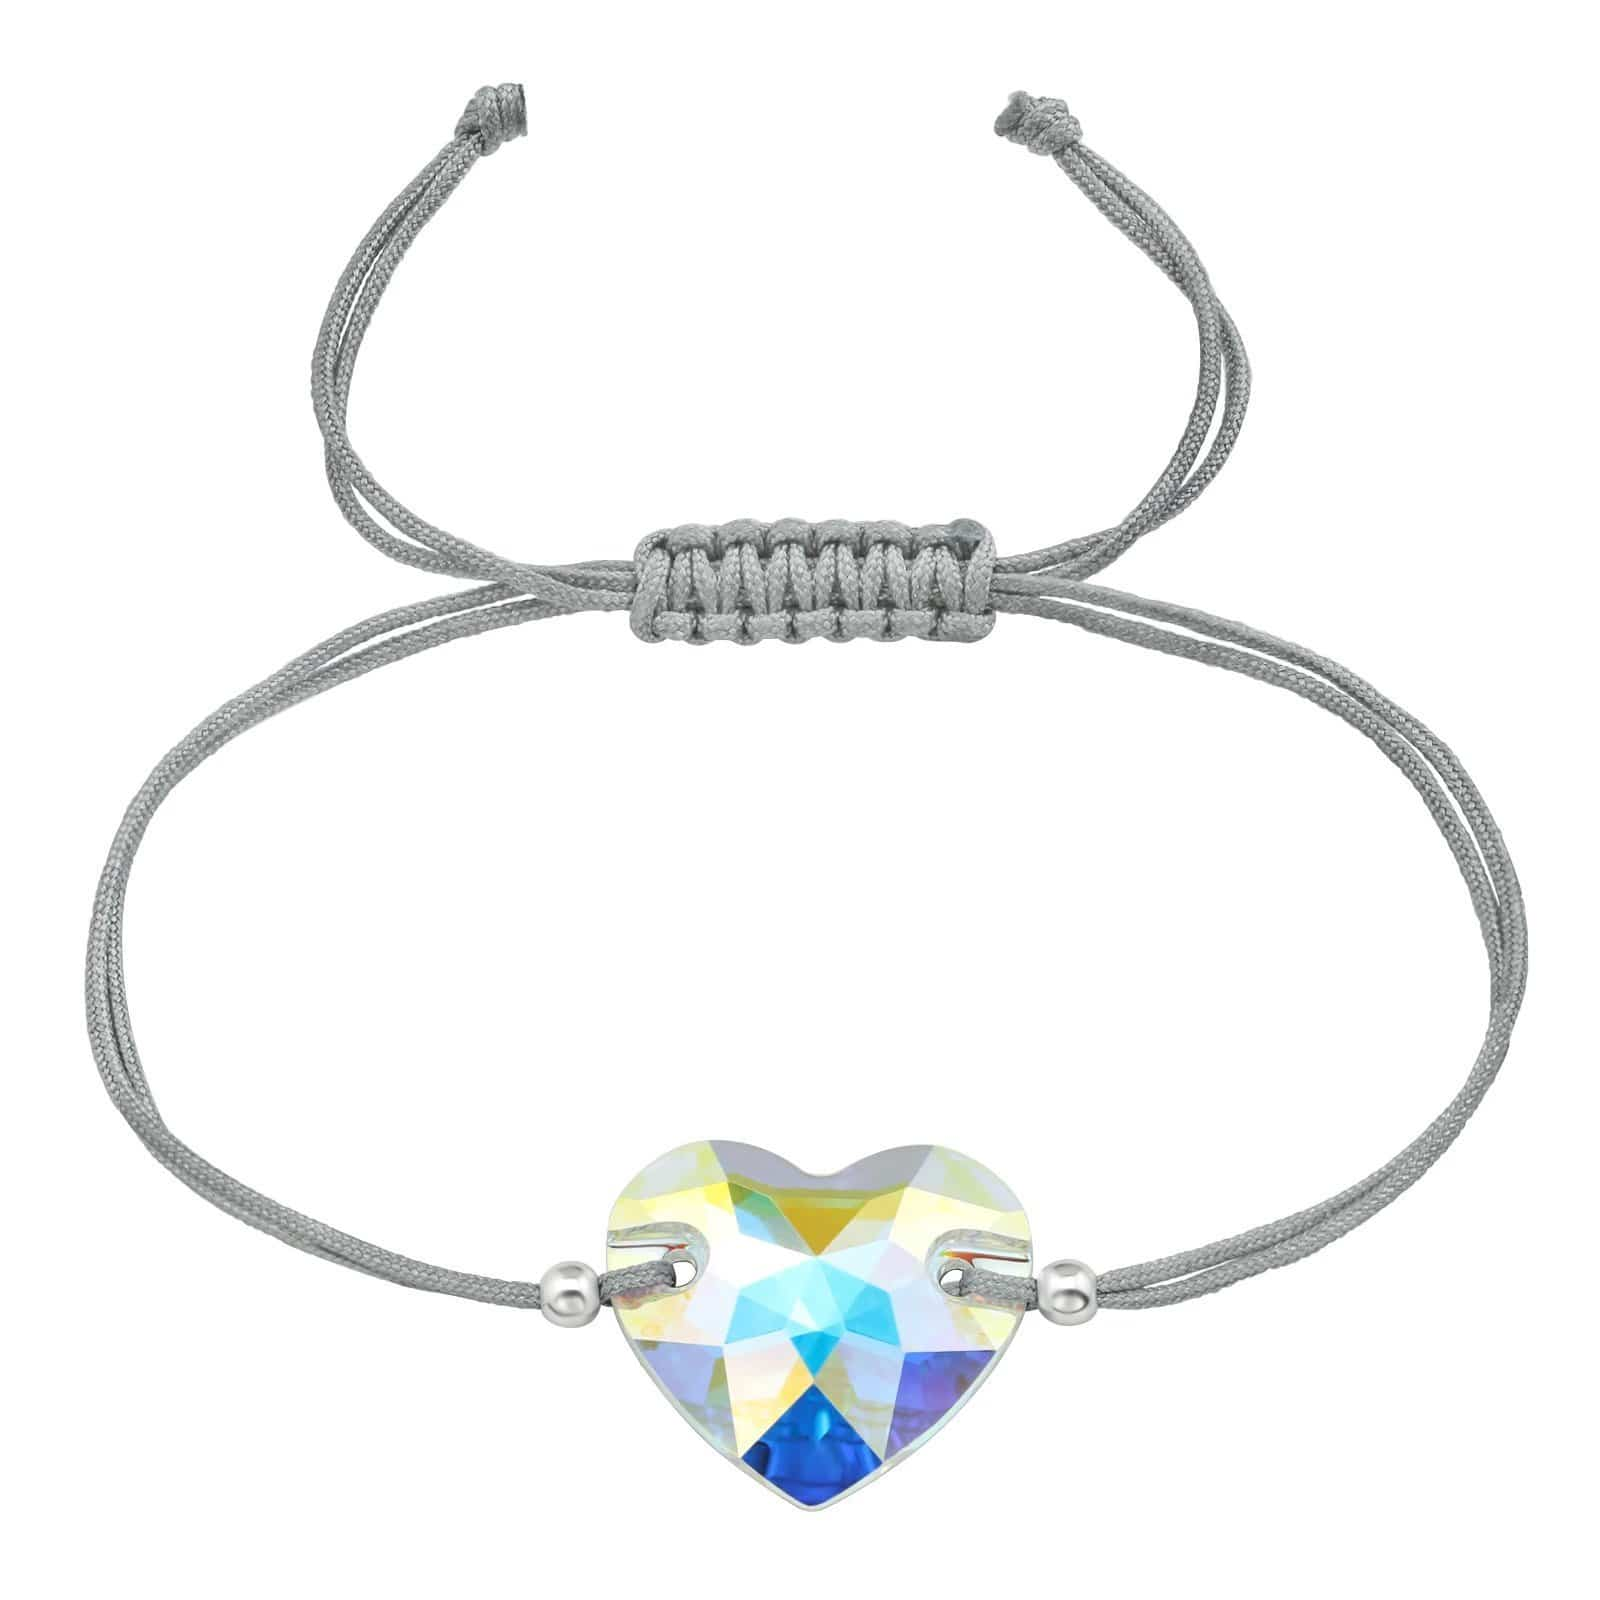 Sterling Silver Heart Adjustable  Bracelet with Swarovski Crystal